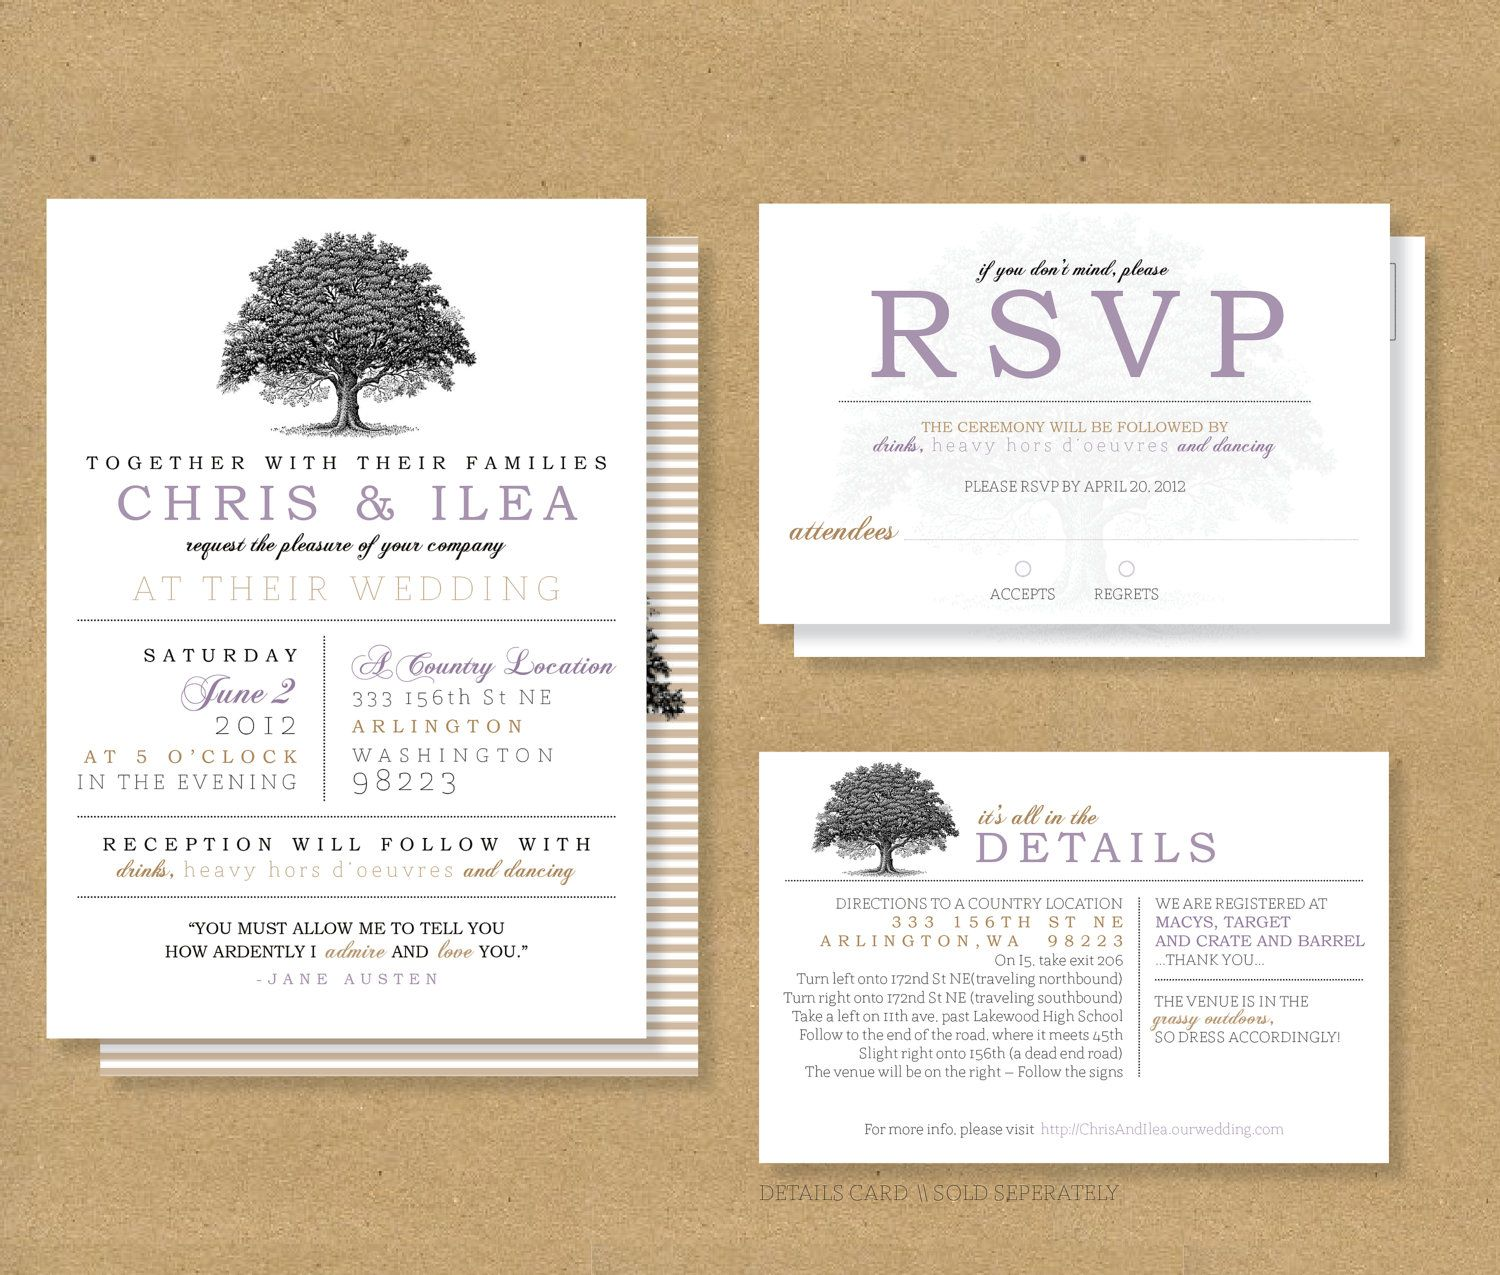 Wedding InvitationWedding Rsvp Wording Samples Tips Wedding Rsvp Wording For YourWedding Rsvp